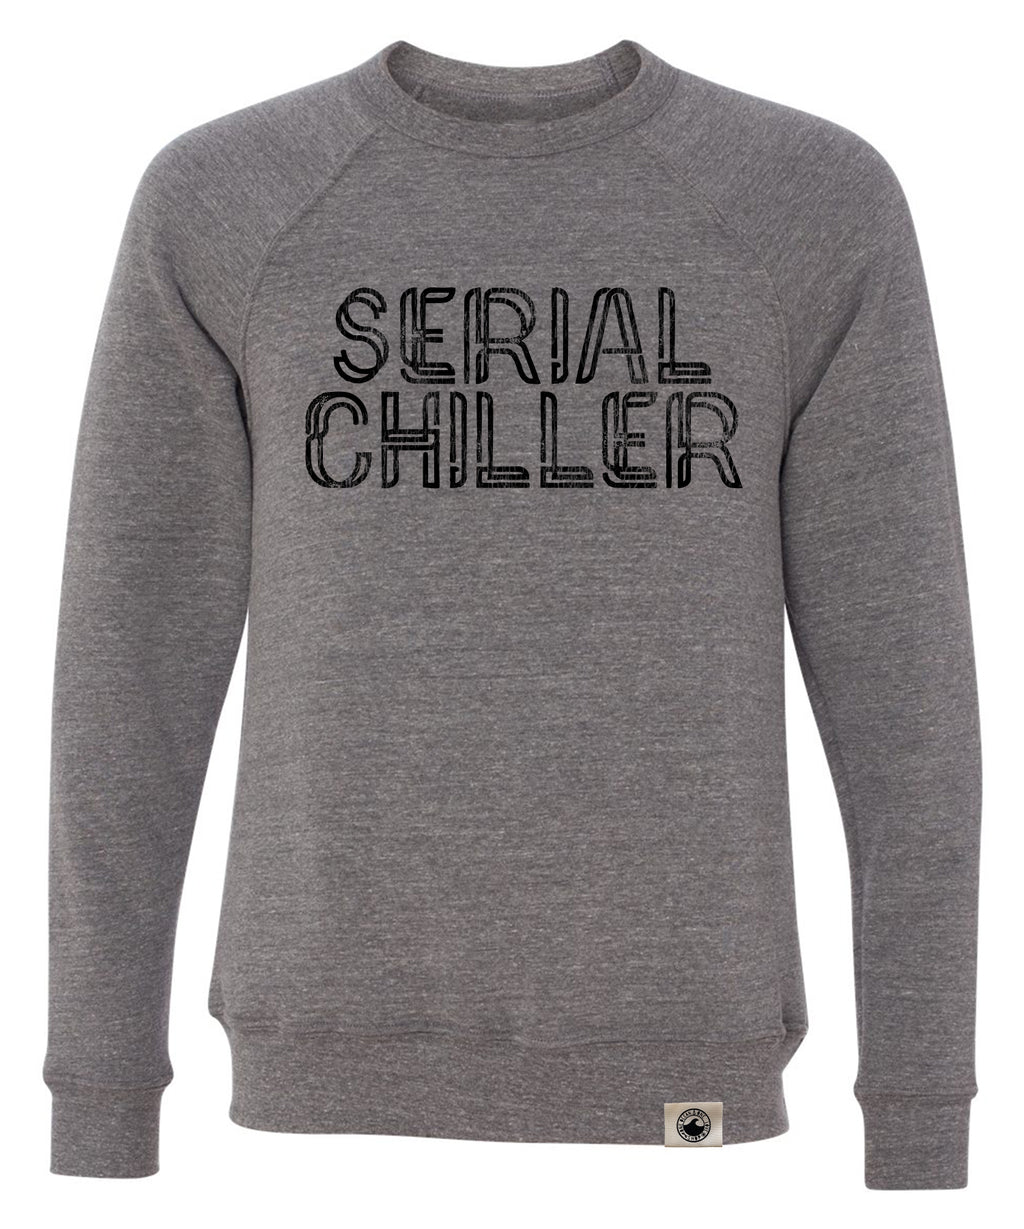 Serial Chiller Crewneck Sweatshirt